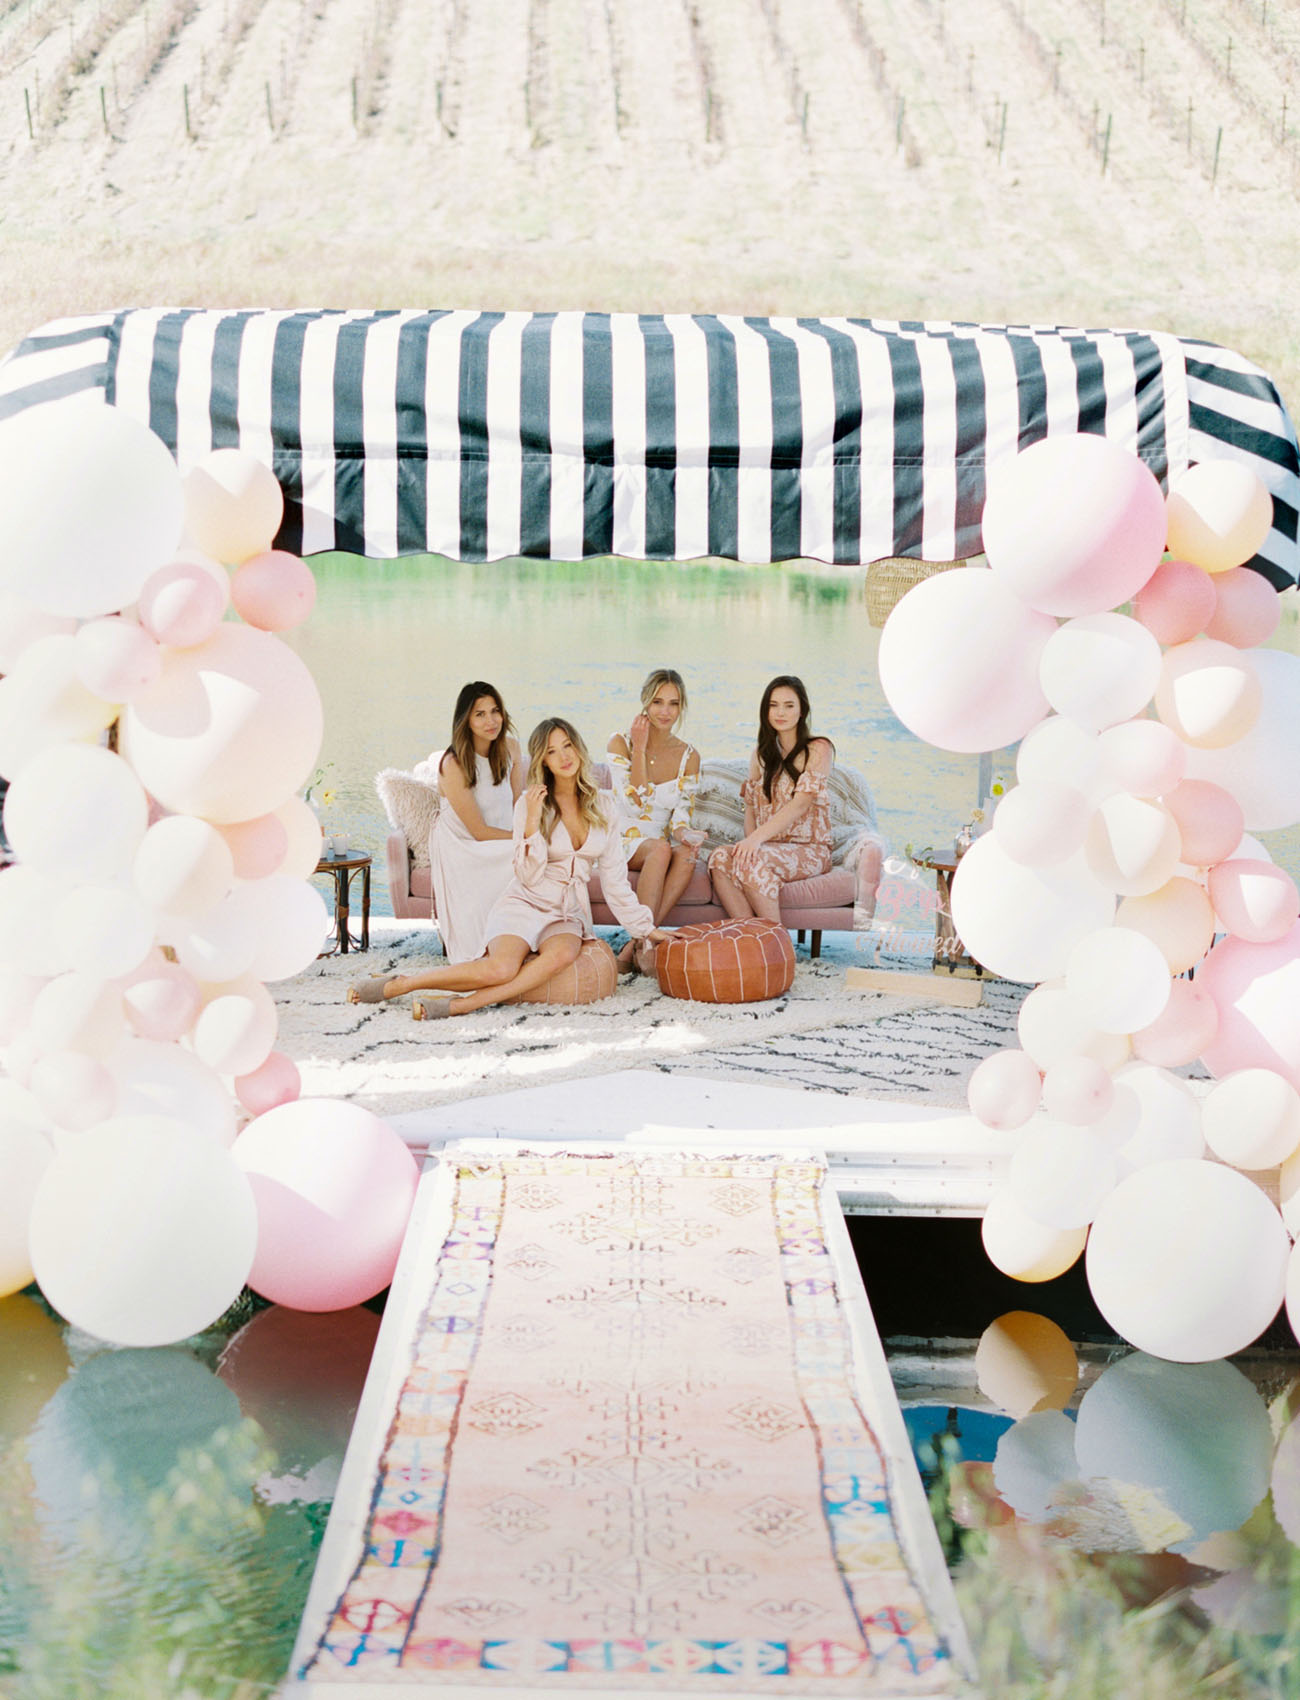 Bachelorette Camp Getaway Inspiration with the CUTEST Restored Trailers!